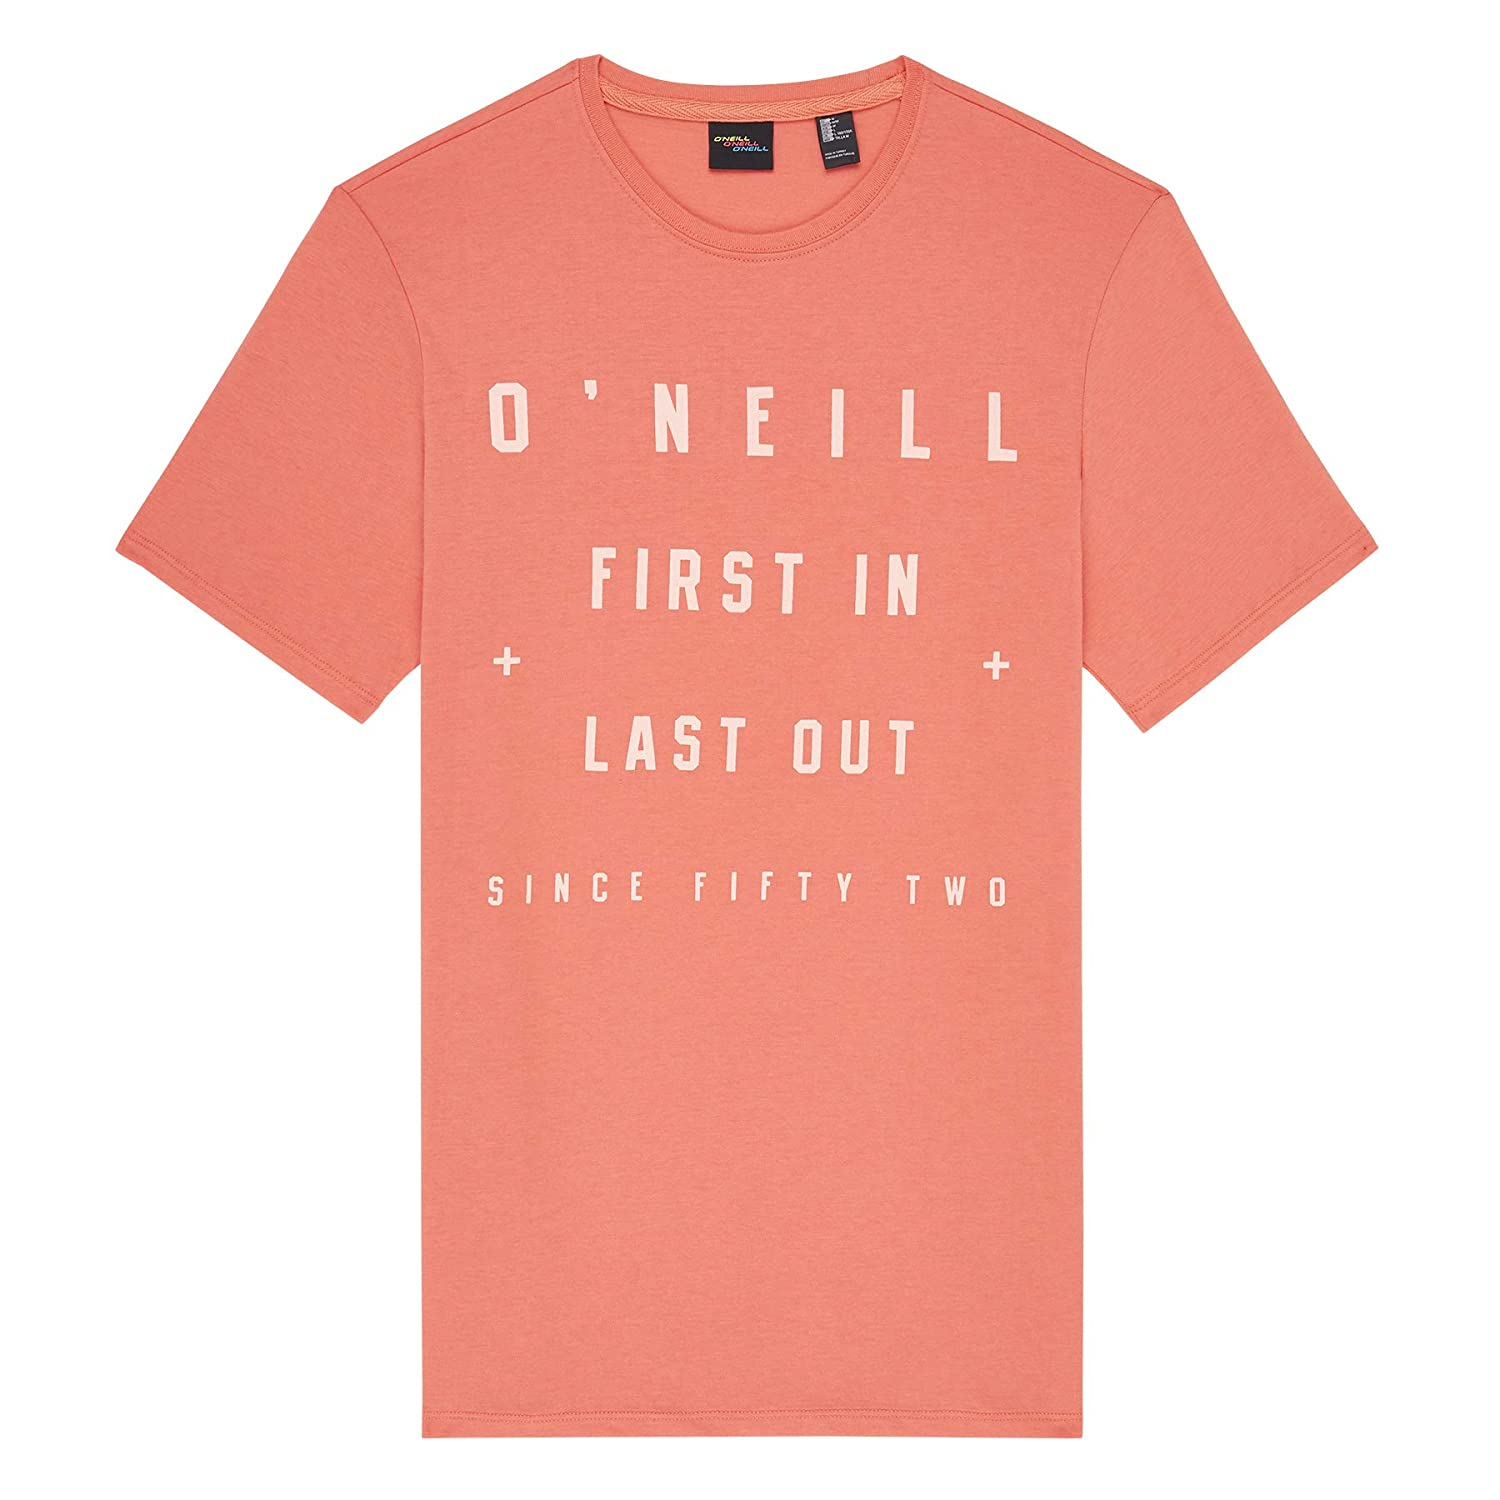 ONEILL LM First In Last out Camiseta, Hombre: Amazon.es: Ropa y ...